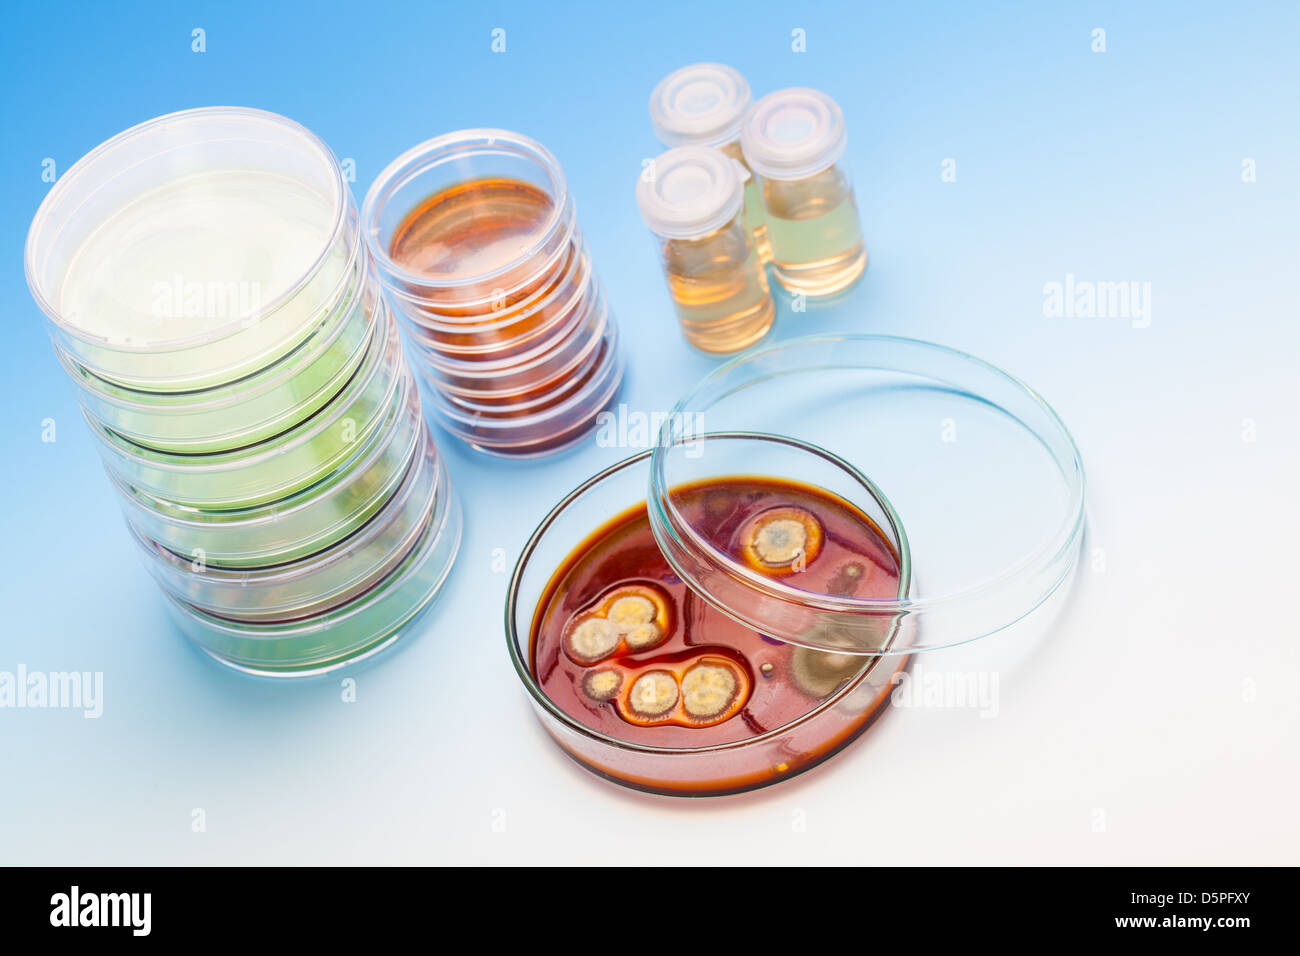 Petri dish with colonies of microorganisms - Stock Image